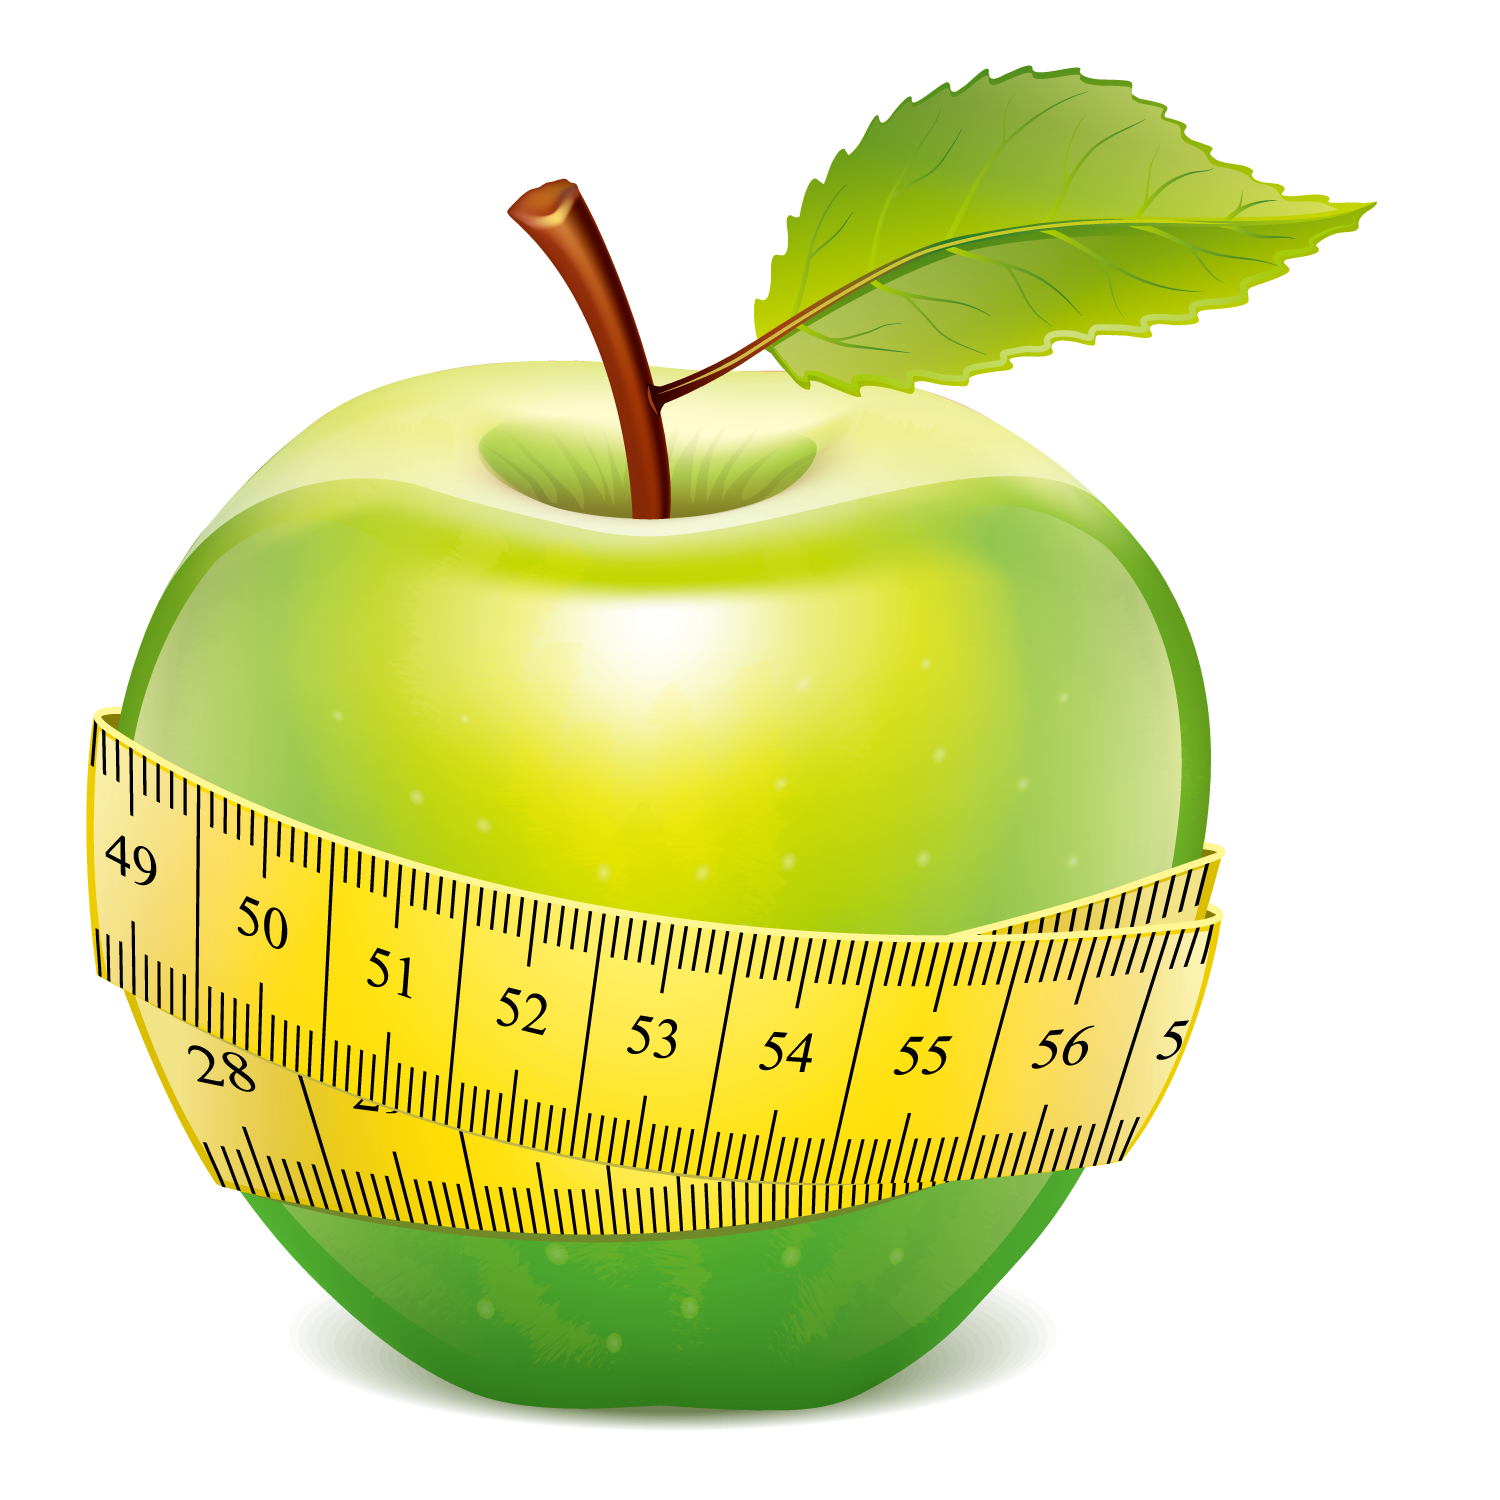 Apple with tape measure clipart picture royalty free download Measure Tape PNG Image - PurePNG | Free transparent CC0 PNG Image ... picture royalty free download